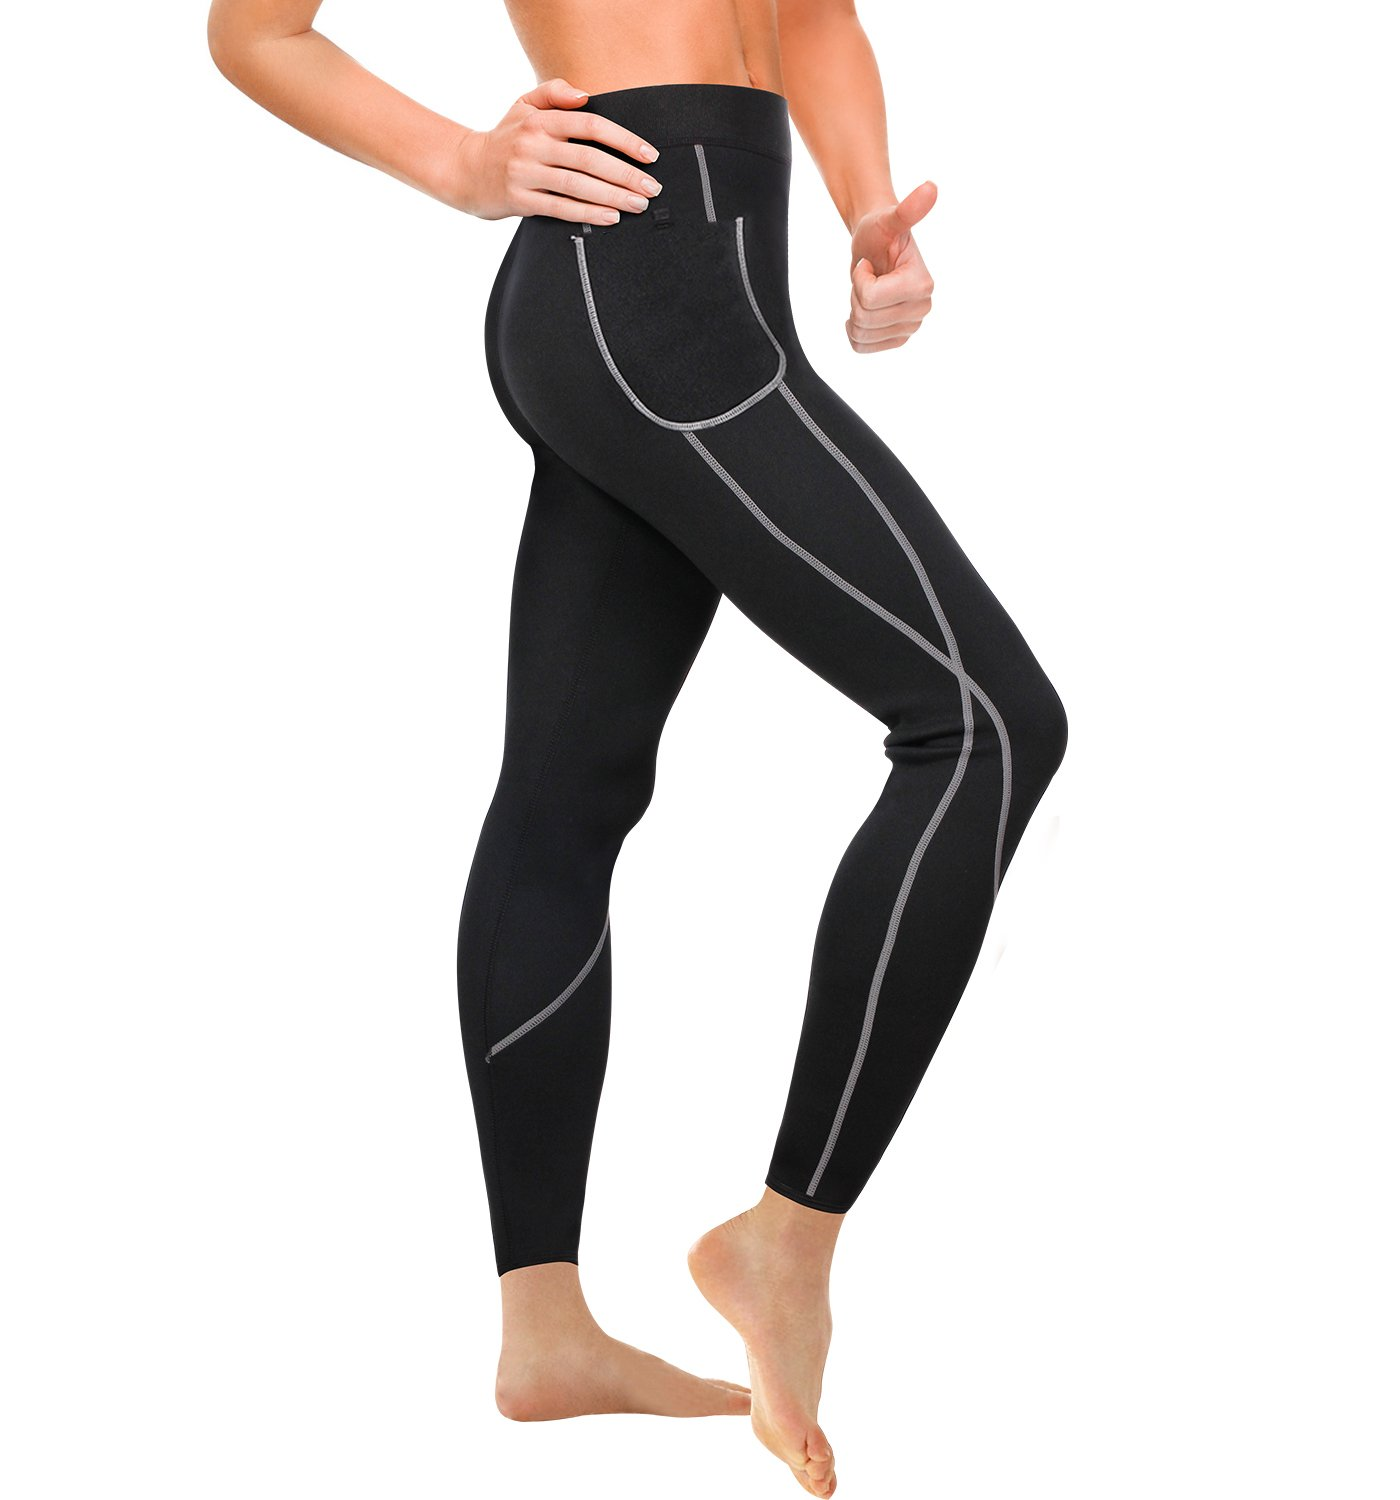 Wonderience Women Sauna Weight Loss Slimming Neoprene Pants with Side Pocket Hot Thermo Fat Burning Sweat Leggings